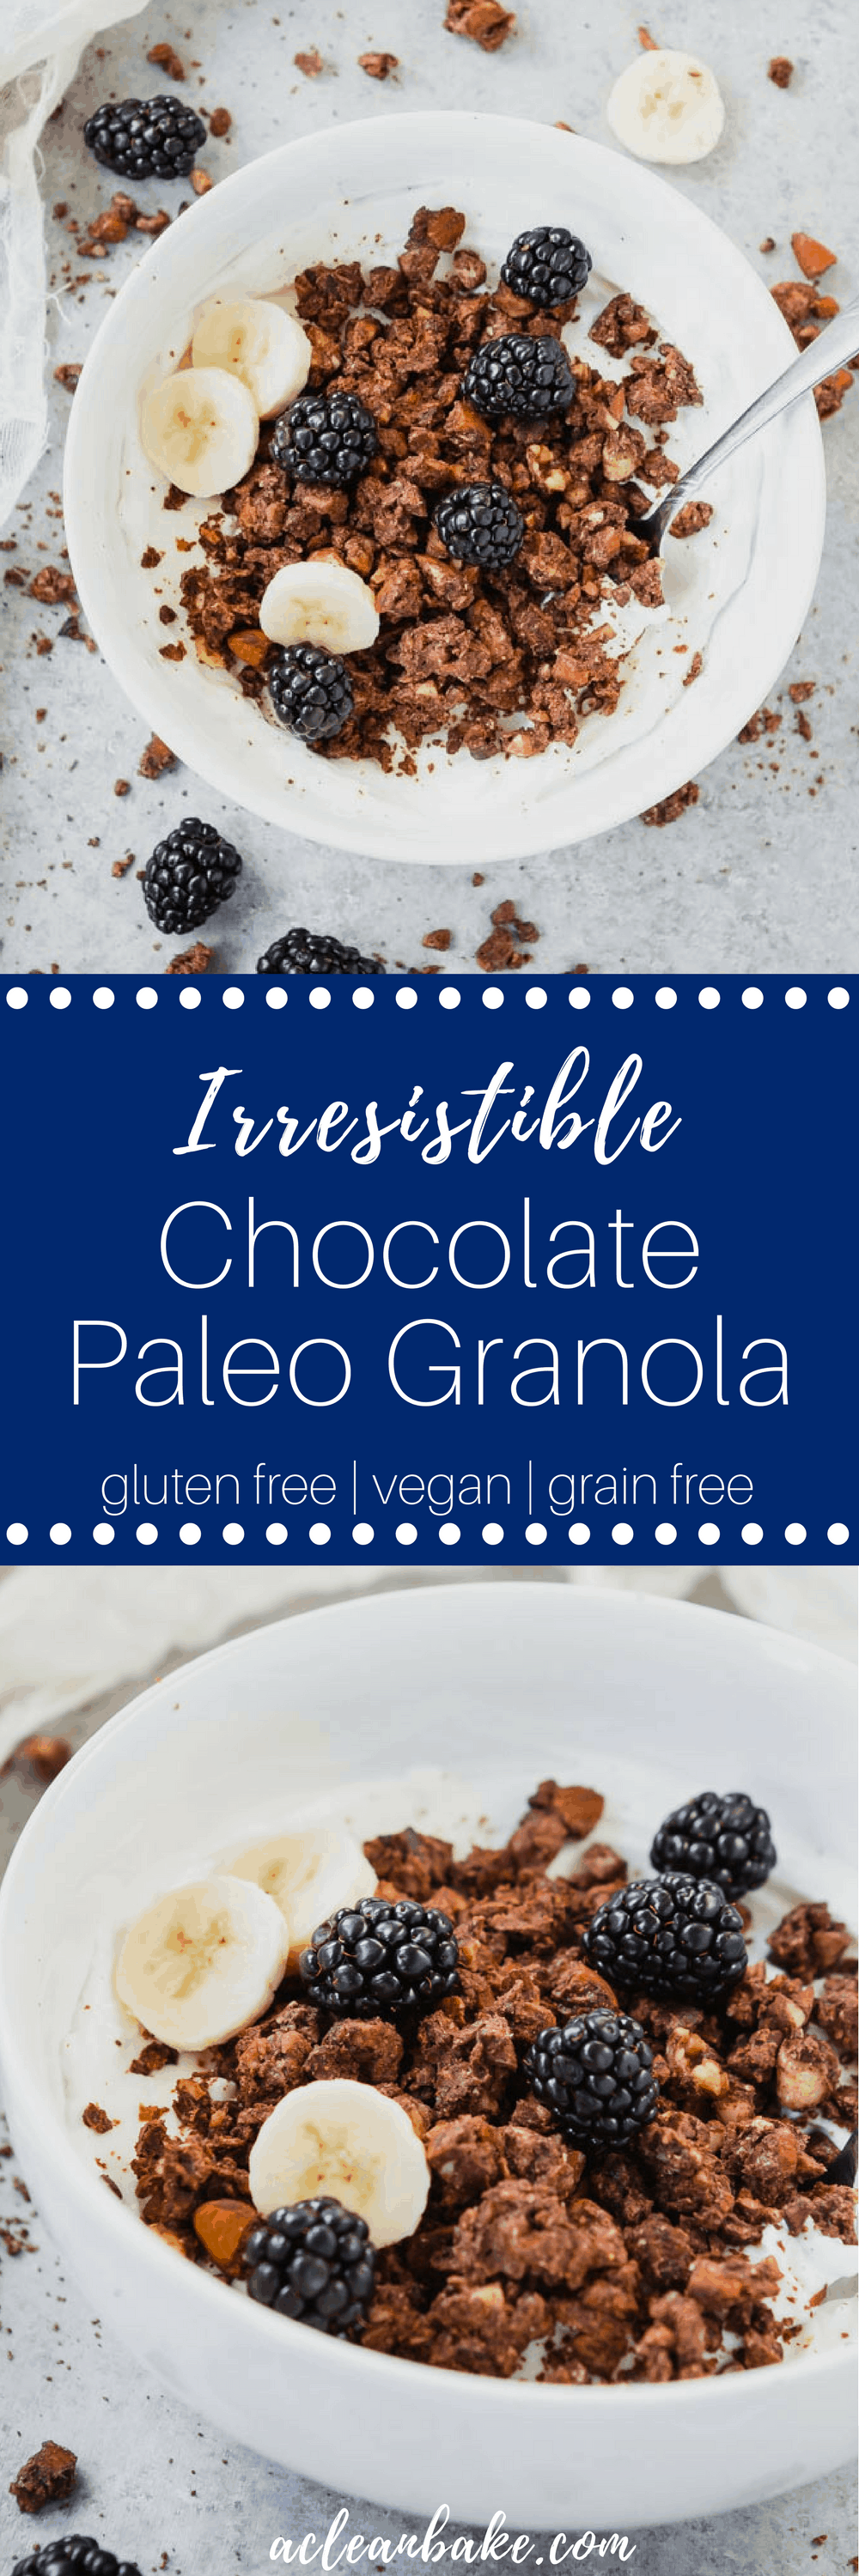 Paleo granola is a hearty, delicious homemade breakfast cereal that is made from nuts, coconut, and chocolate! This gluten free, dairy free, and lower carb paleo granola is irresistible! #paleobreakfast #paleobreakfastrecipe #granolarecipe #healthybreakfast #healthybreakfastrecipe #glutenfreebreakfast #glutenfreerecipe #glutenfreebreakfastrecipe #chocolaterecipe #healthychocolaterecipe #dairyfree #dairyfreebreakfast #vegan #veganrecipe #veganbreakfast #veganbreakfastrecipe